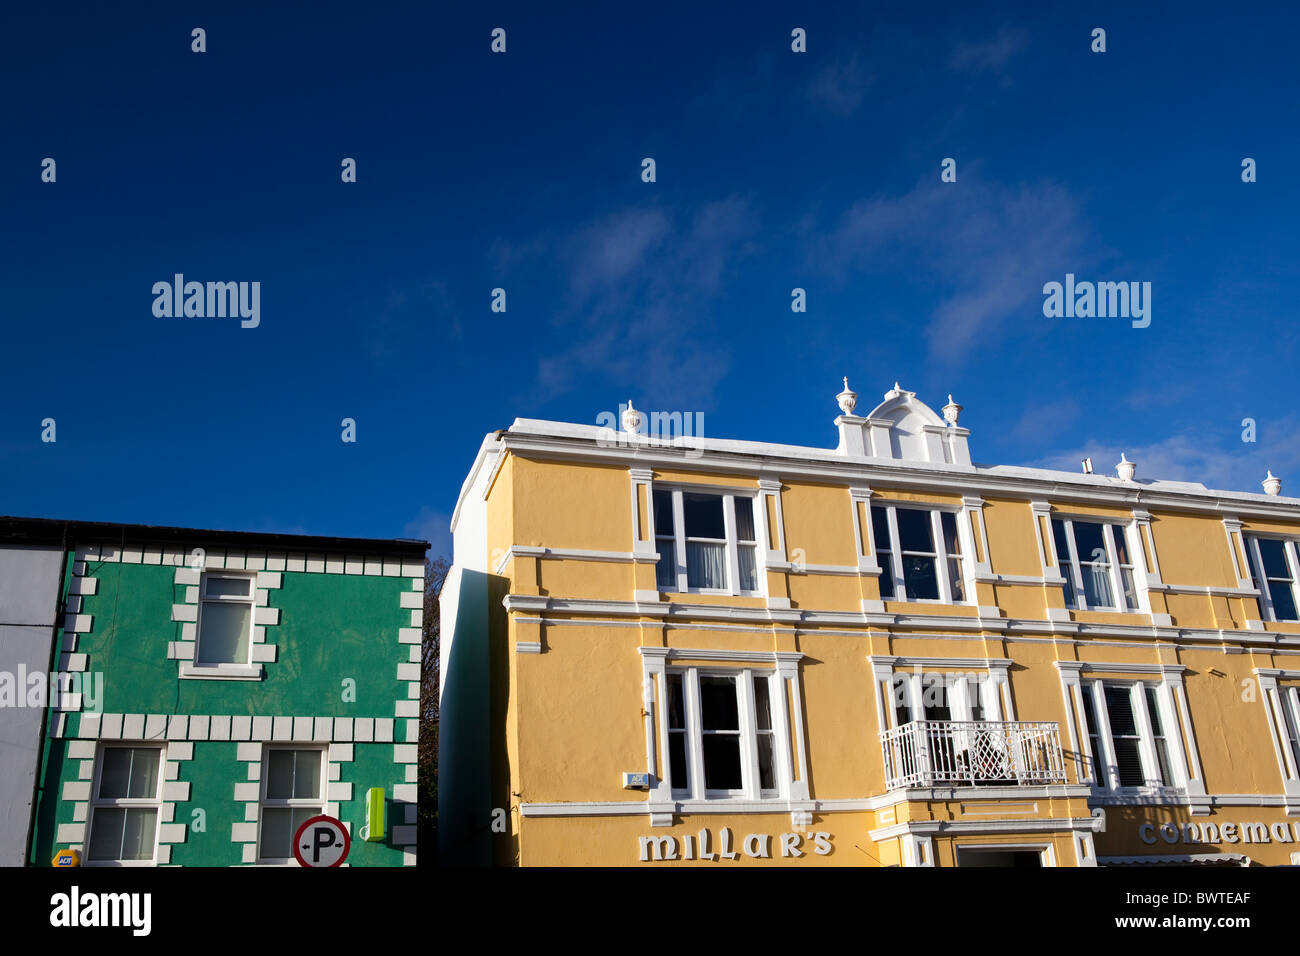 Typical 19th century shopfronts in Clifden, Co Galway, Connemara, Ireland - Stock Image